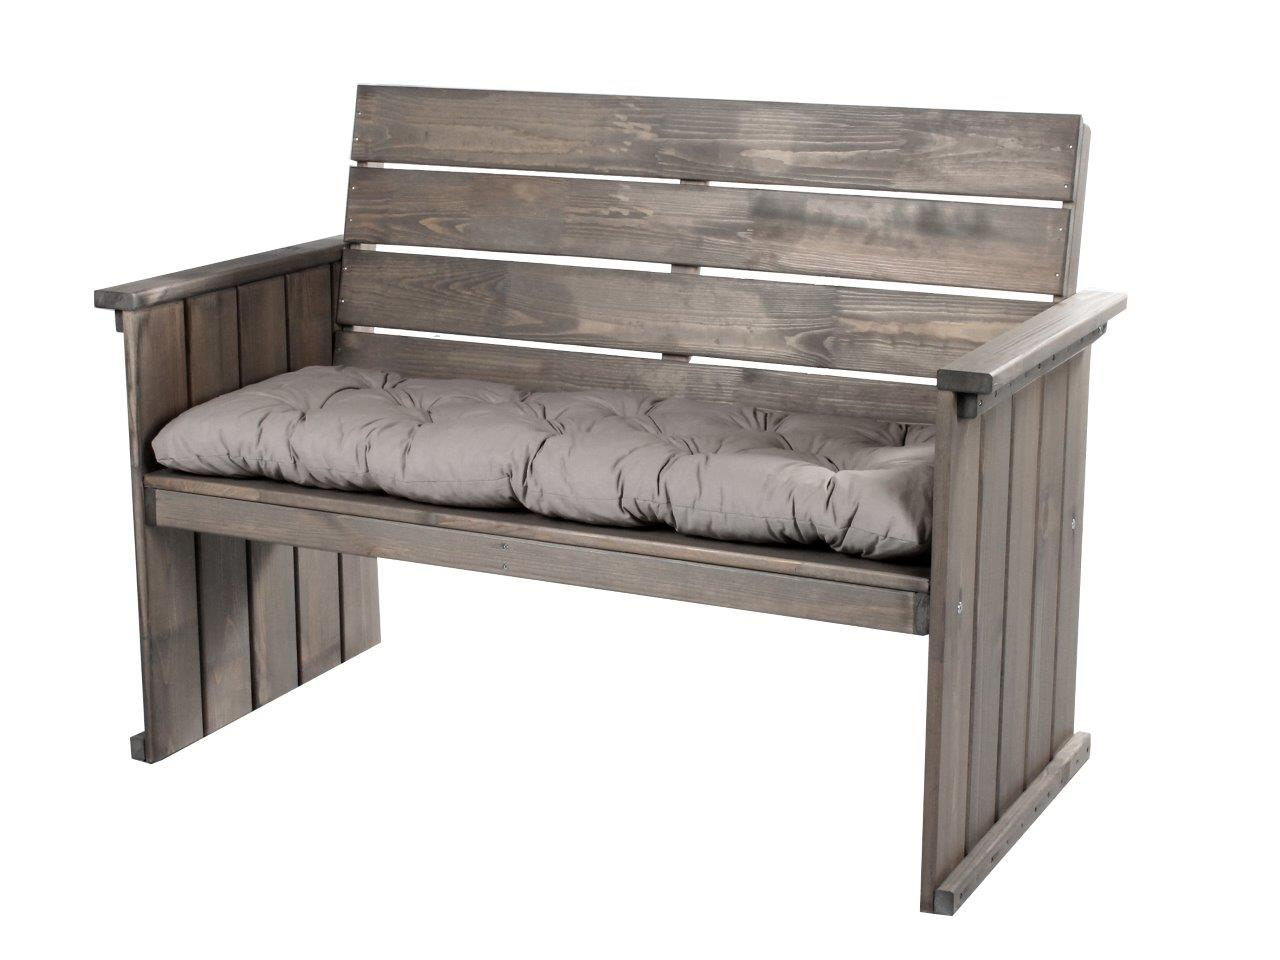 massive bank 130cm massivholz taupe strandgut europa gartenm bel holzbank neu ebay. Black Bedroom Furniture Sets. Home Design Ideas